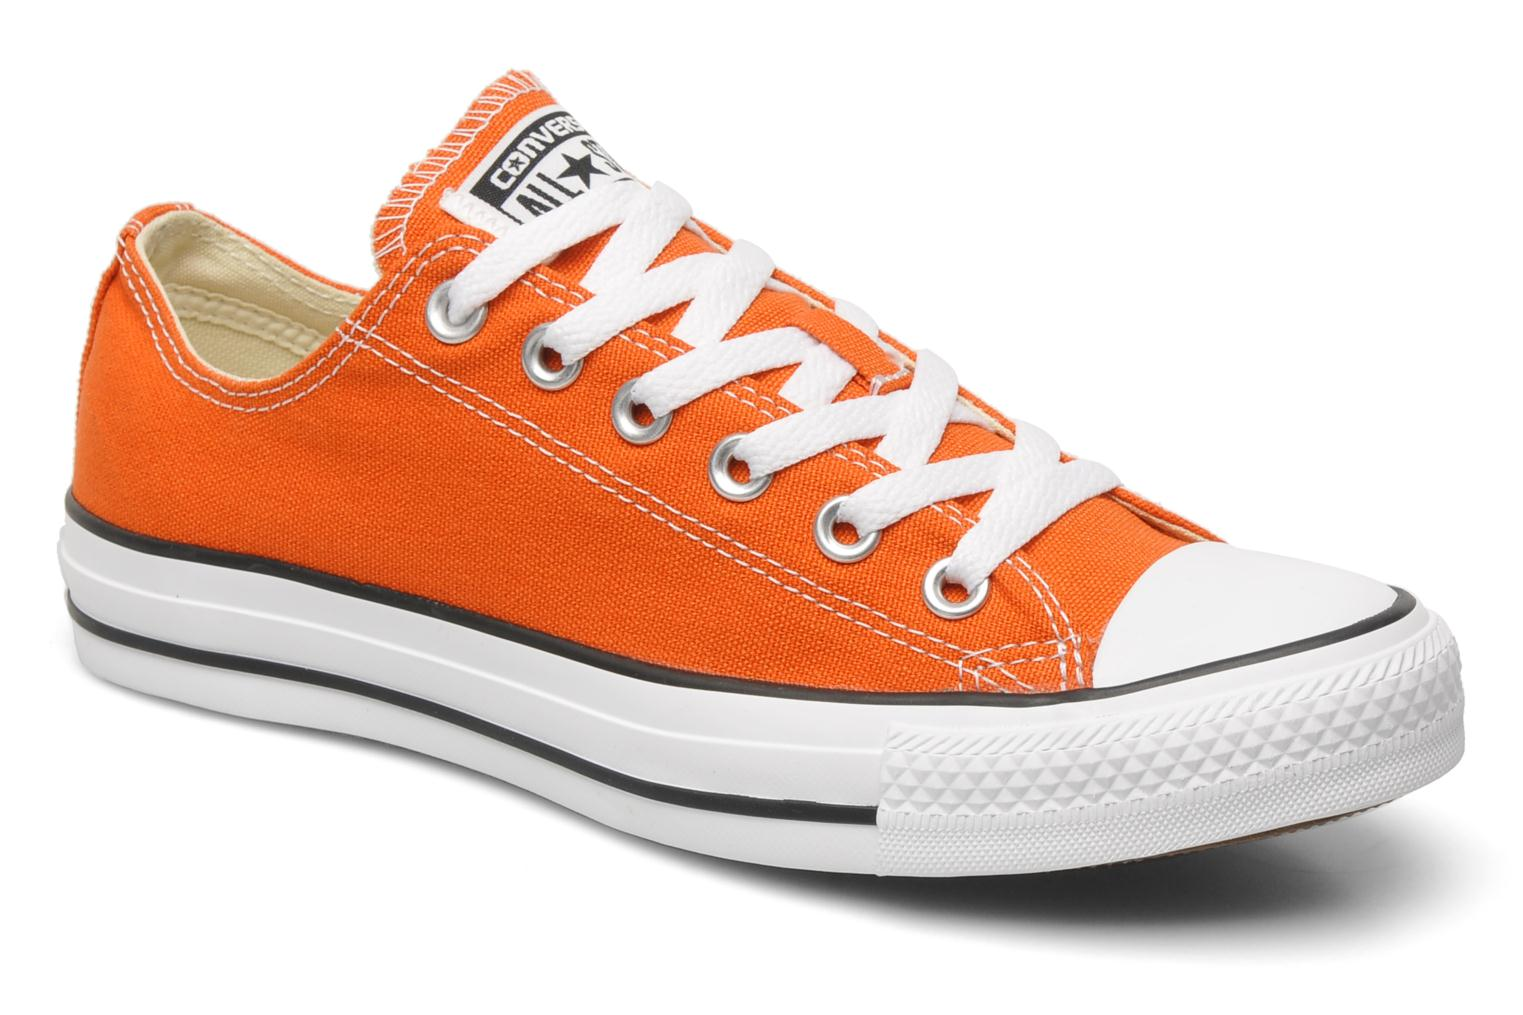 Converse all star shoes green